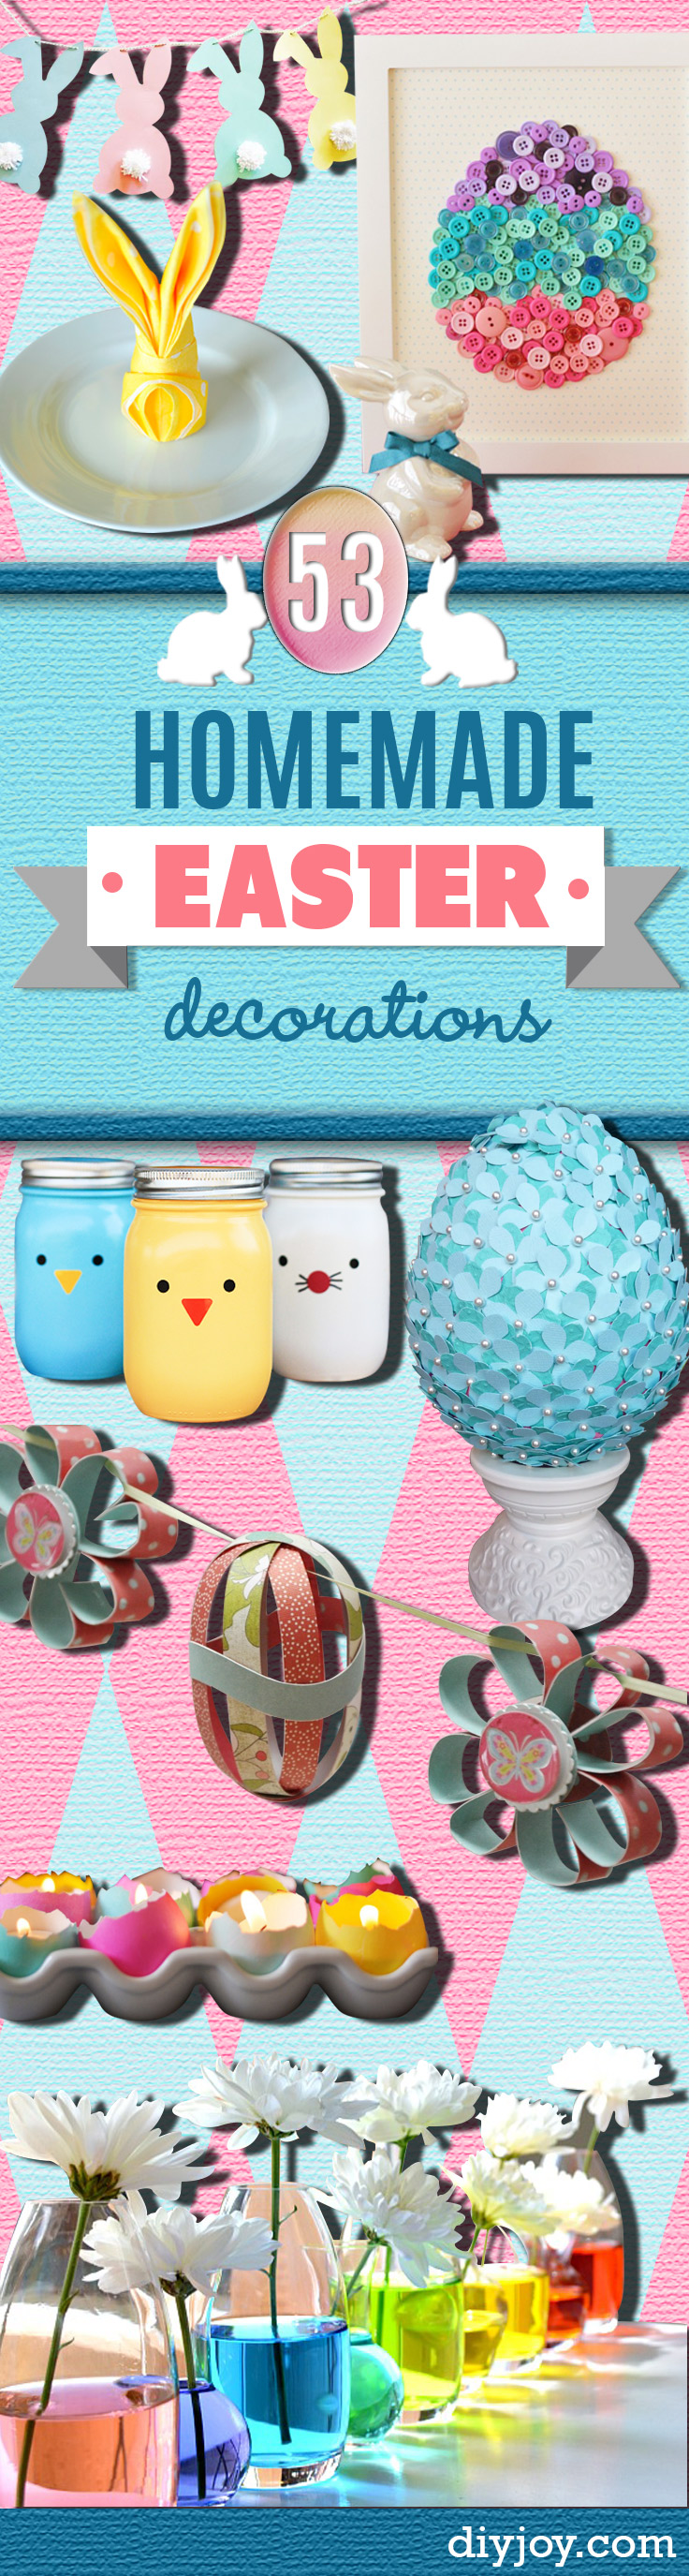 48 diy easter decorations you need right now diy joy for Diy easter decorations for the home